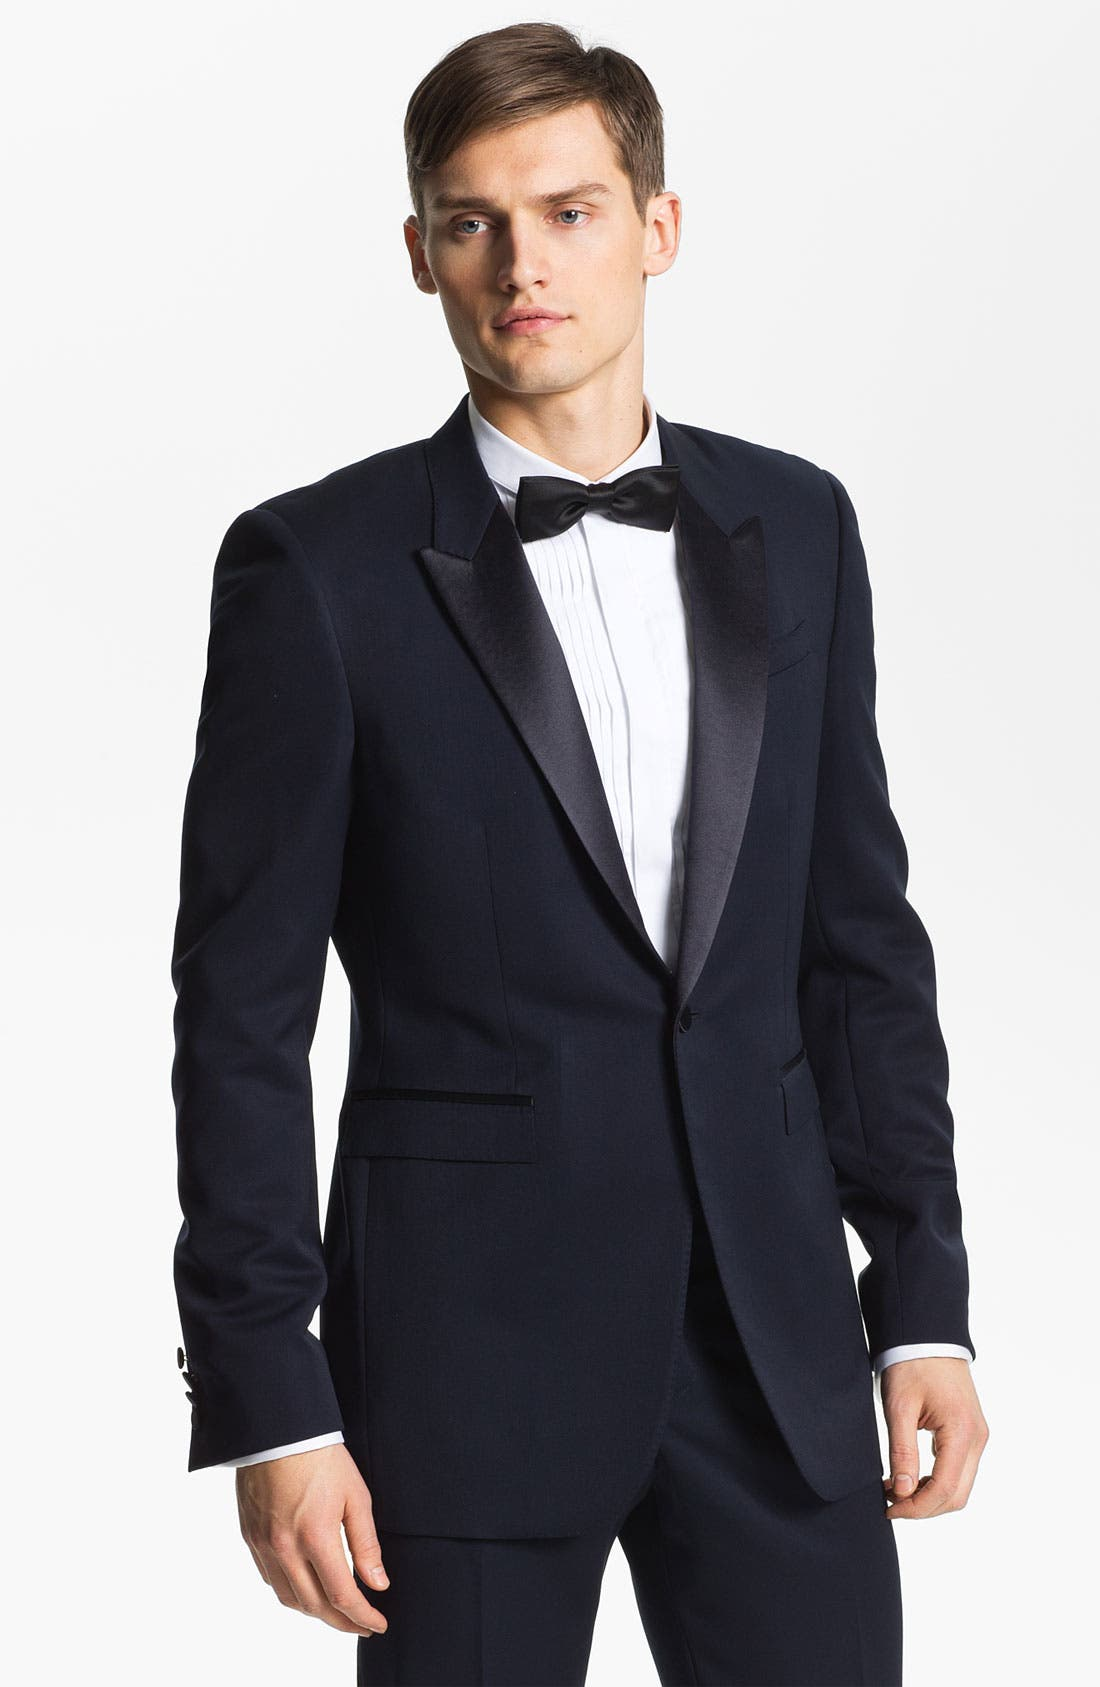 Main Image - Burberry Prorsum Peak Lapel Tuxedo Jacket